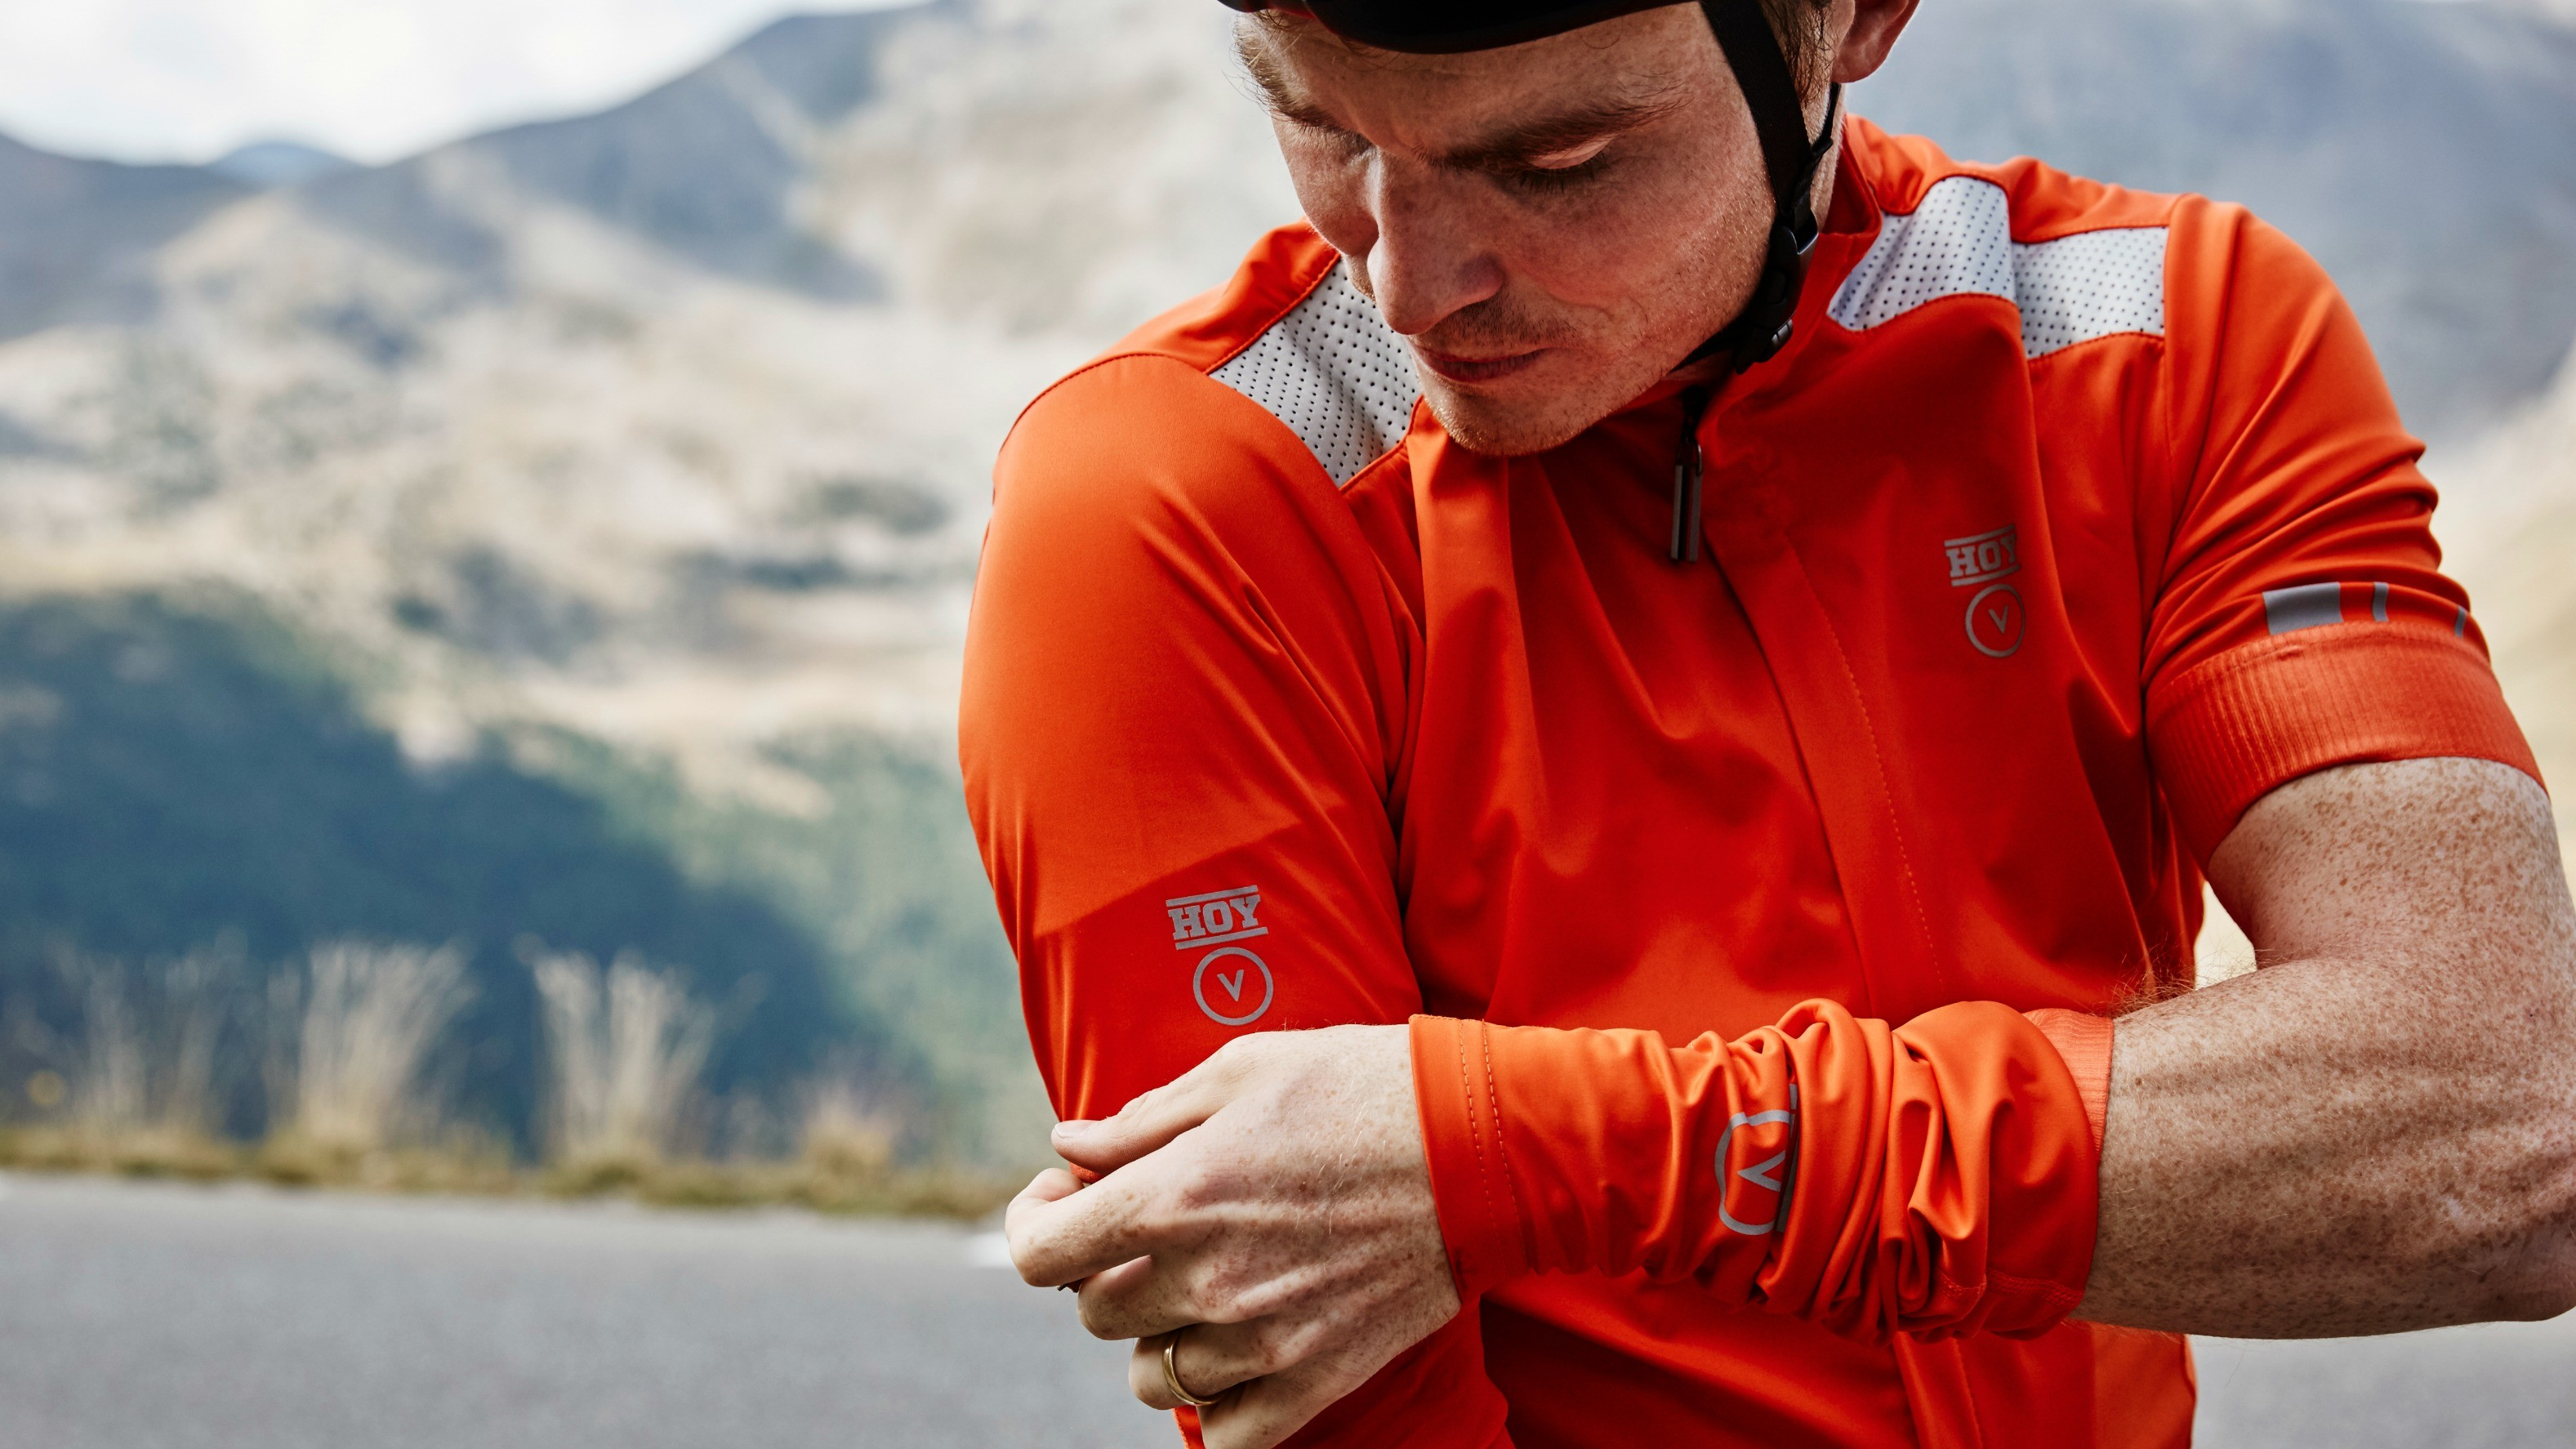 The short-sleeved Fortress jersey is made from a thicker weight material and comes with arm warmers included